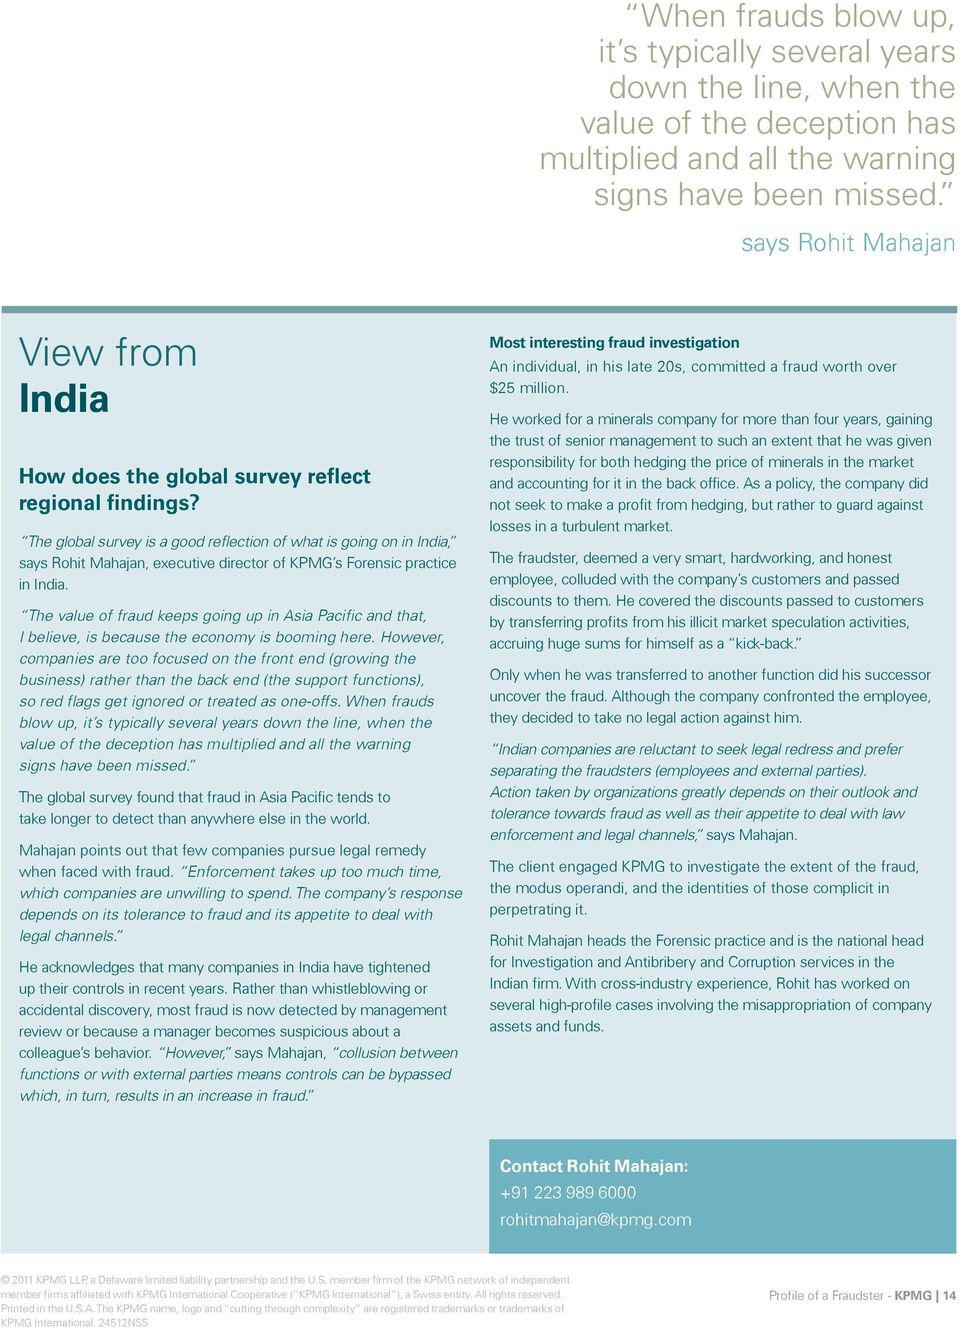 The global survey is a good reflection of what is going on in India, says Rohit Mahajan, executive director of KPMG s Forensic practice in India.